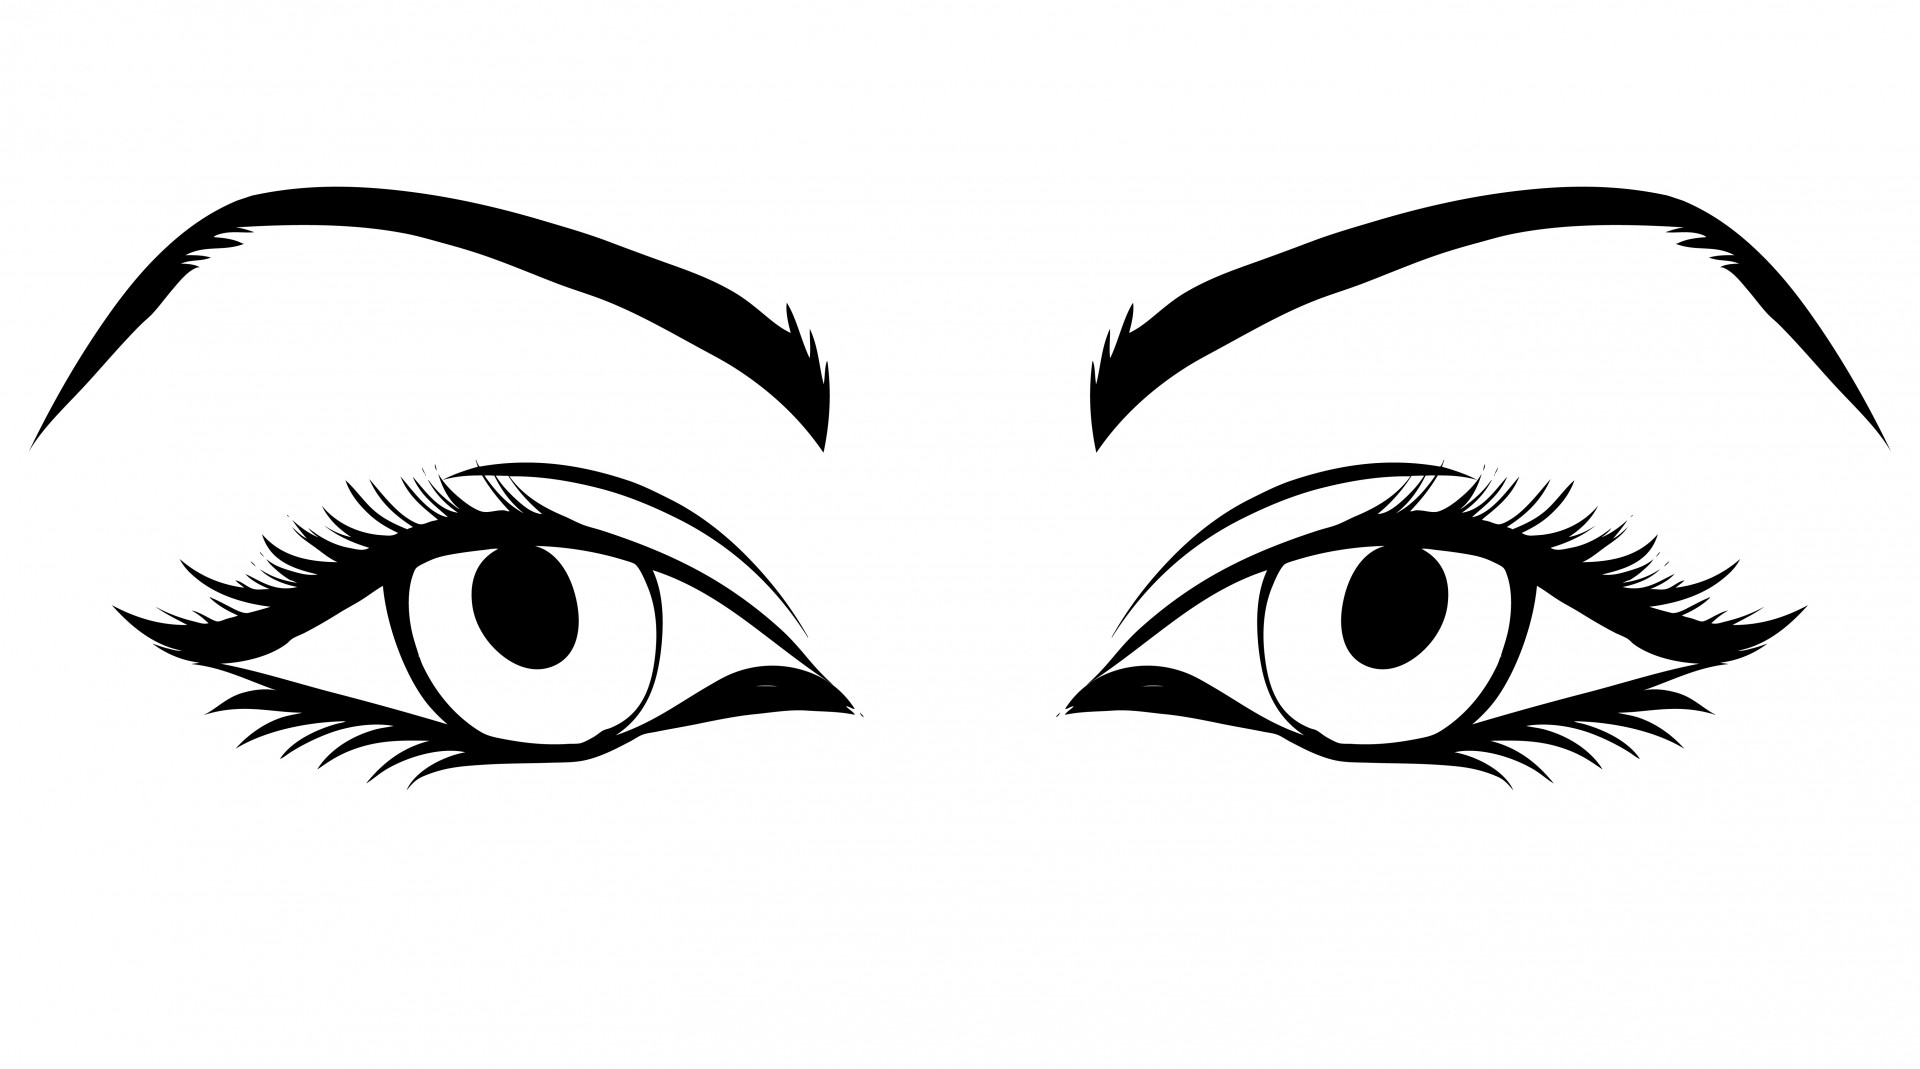 Animal eyes and eyelashes clipart.